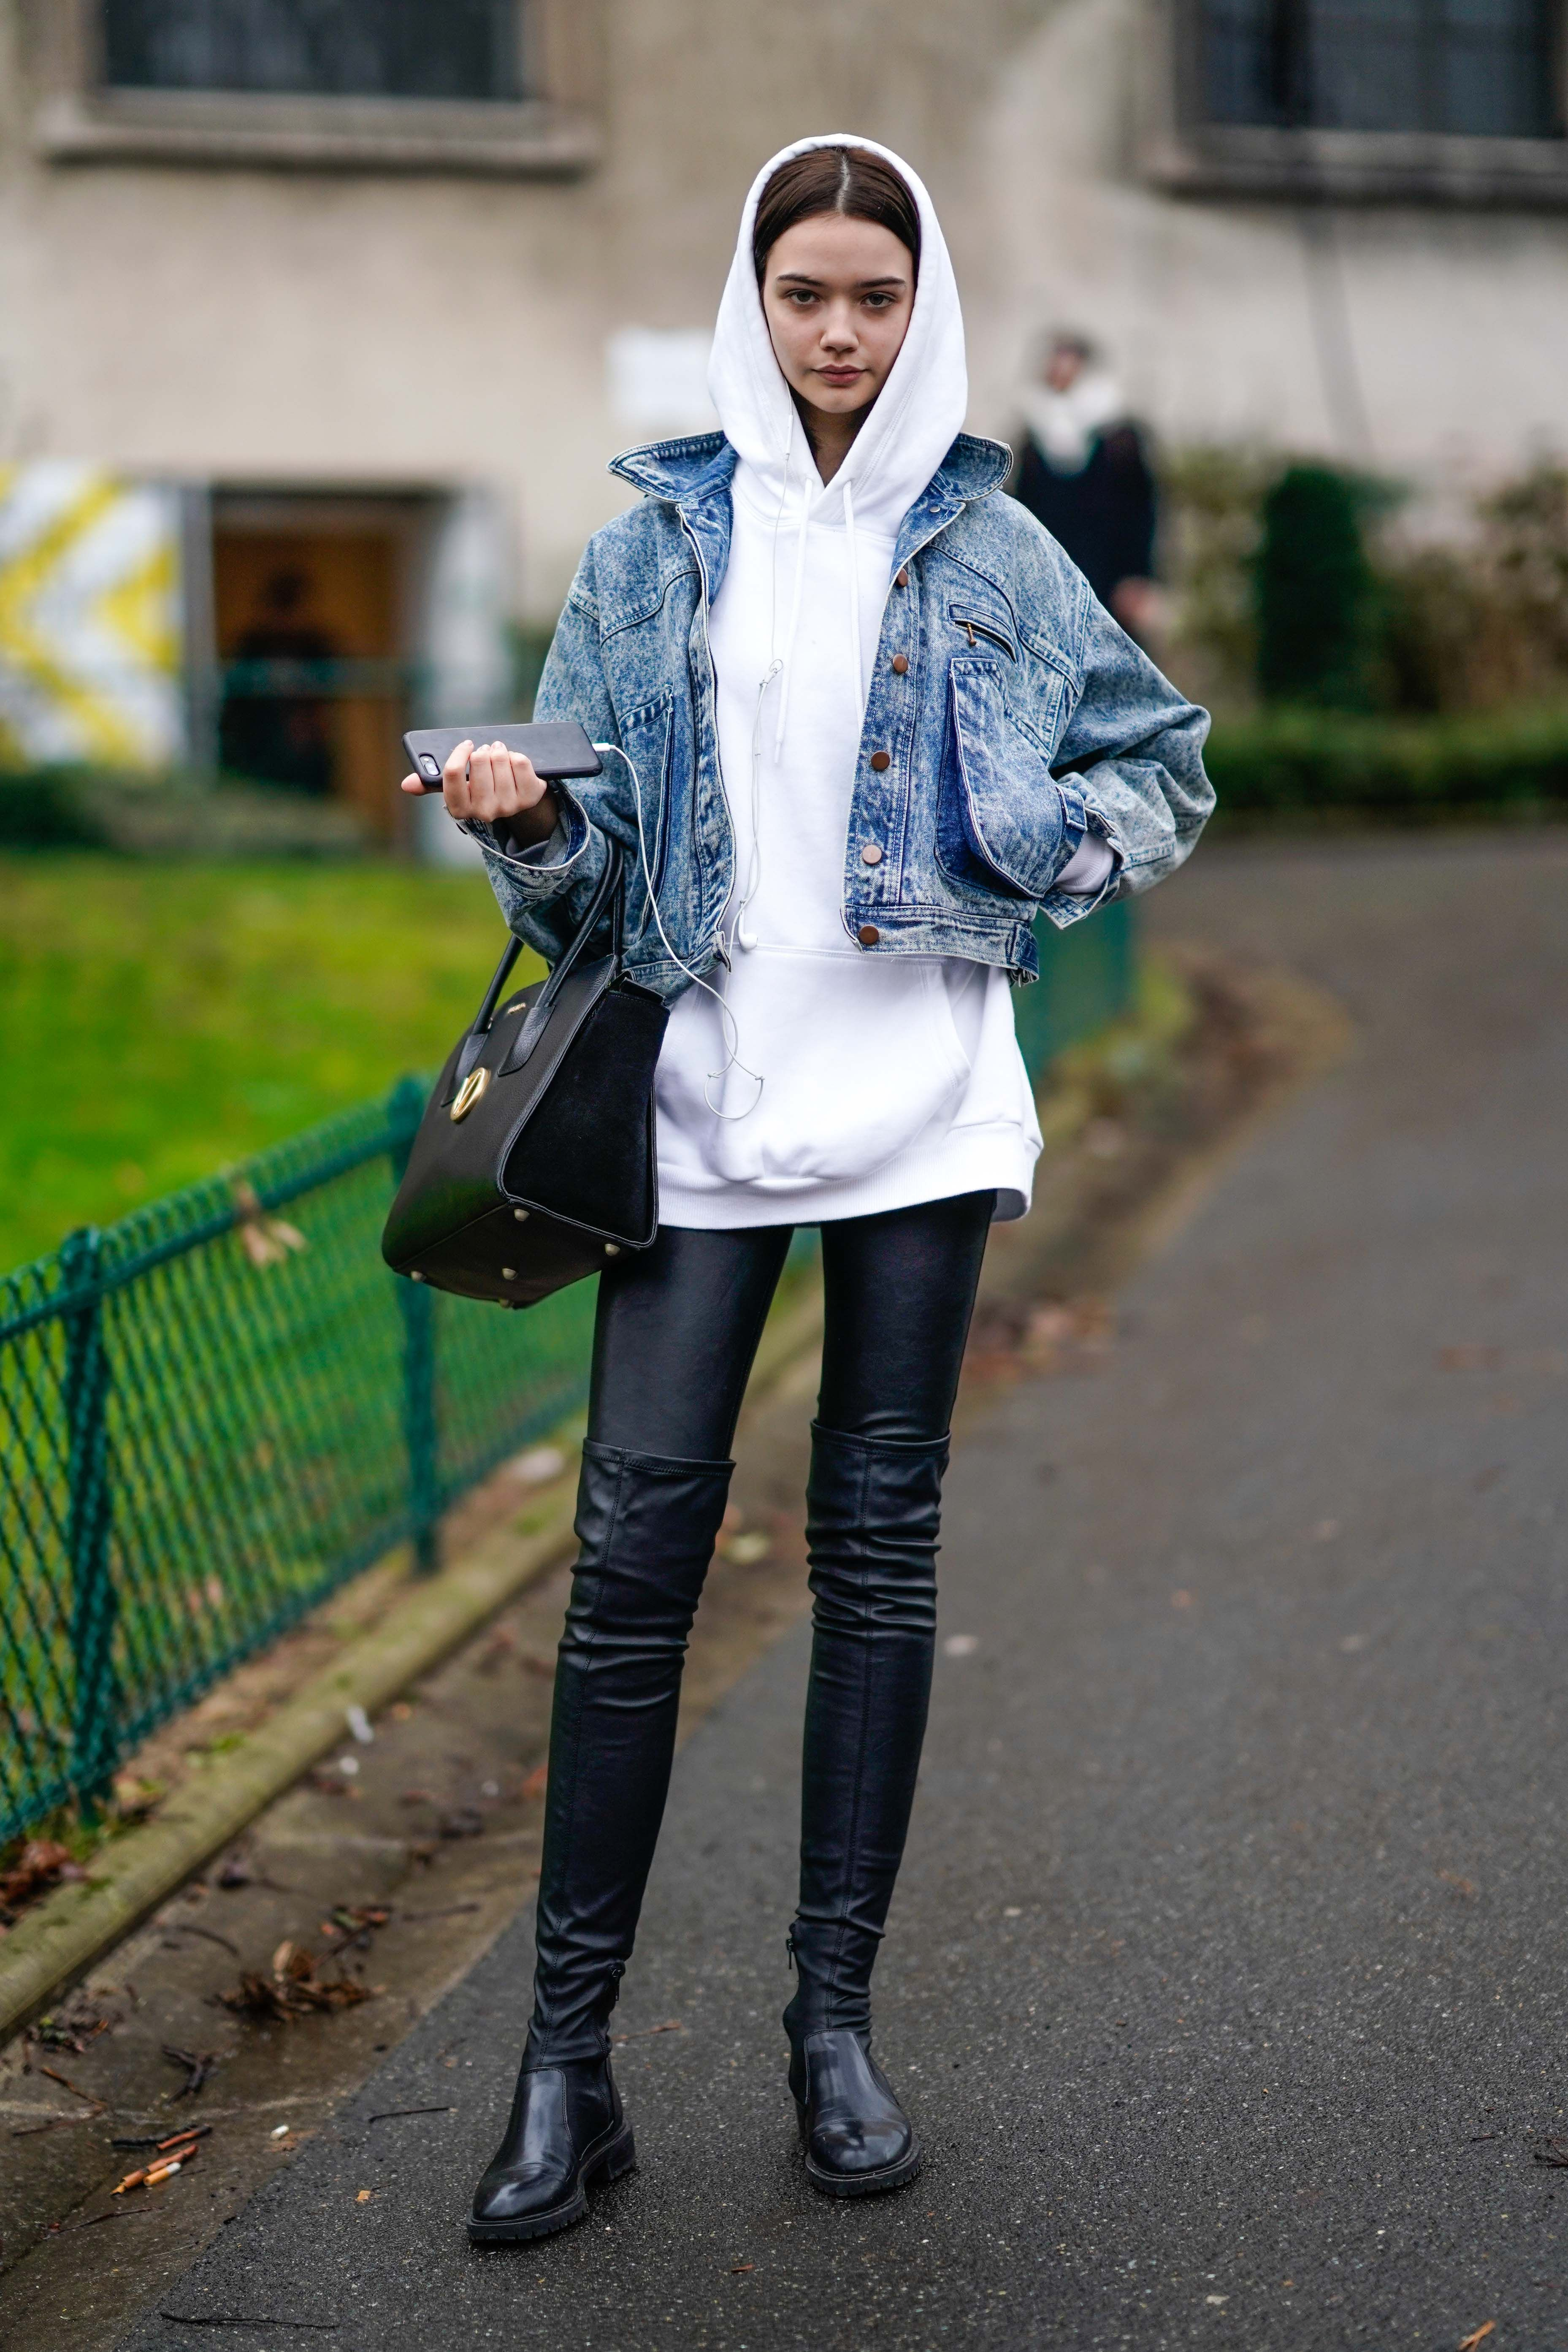 Layered Up When layering feels like a second job, sometimes all you want to do is throw on a pullover. Take it to the next level by adding some denim over it and you've miraculously become a street style star overnight.